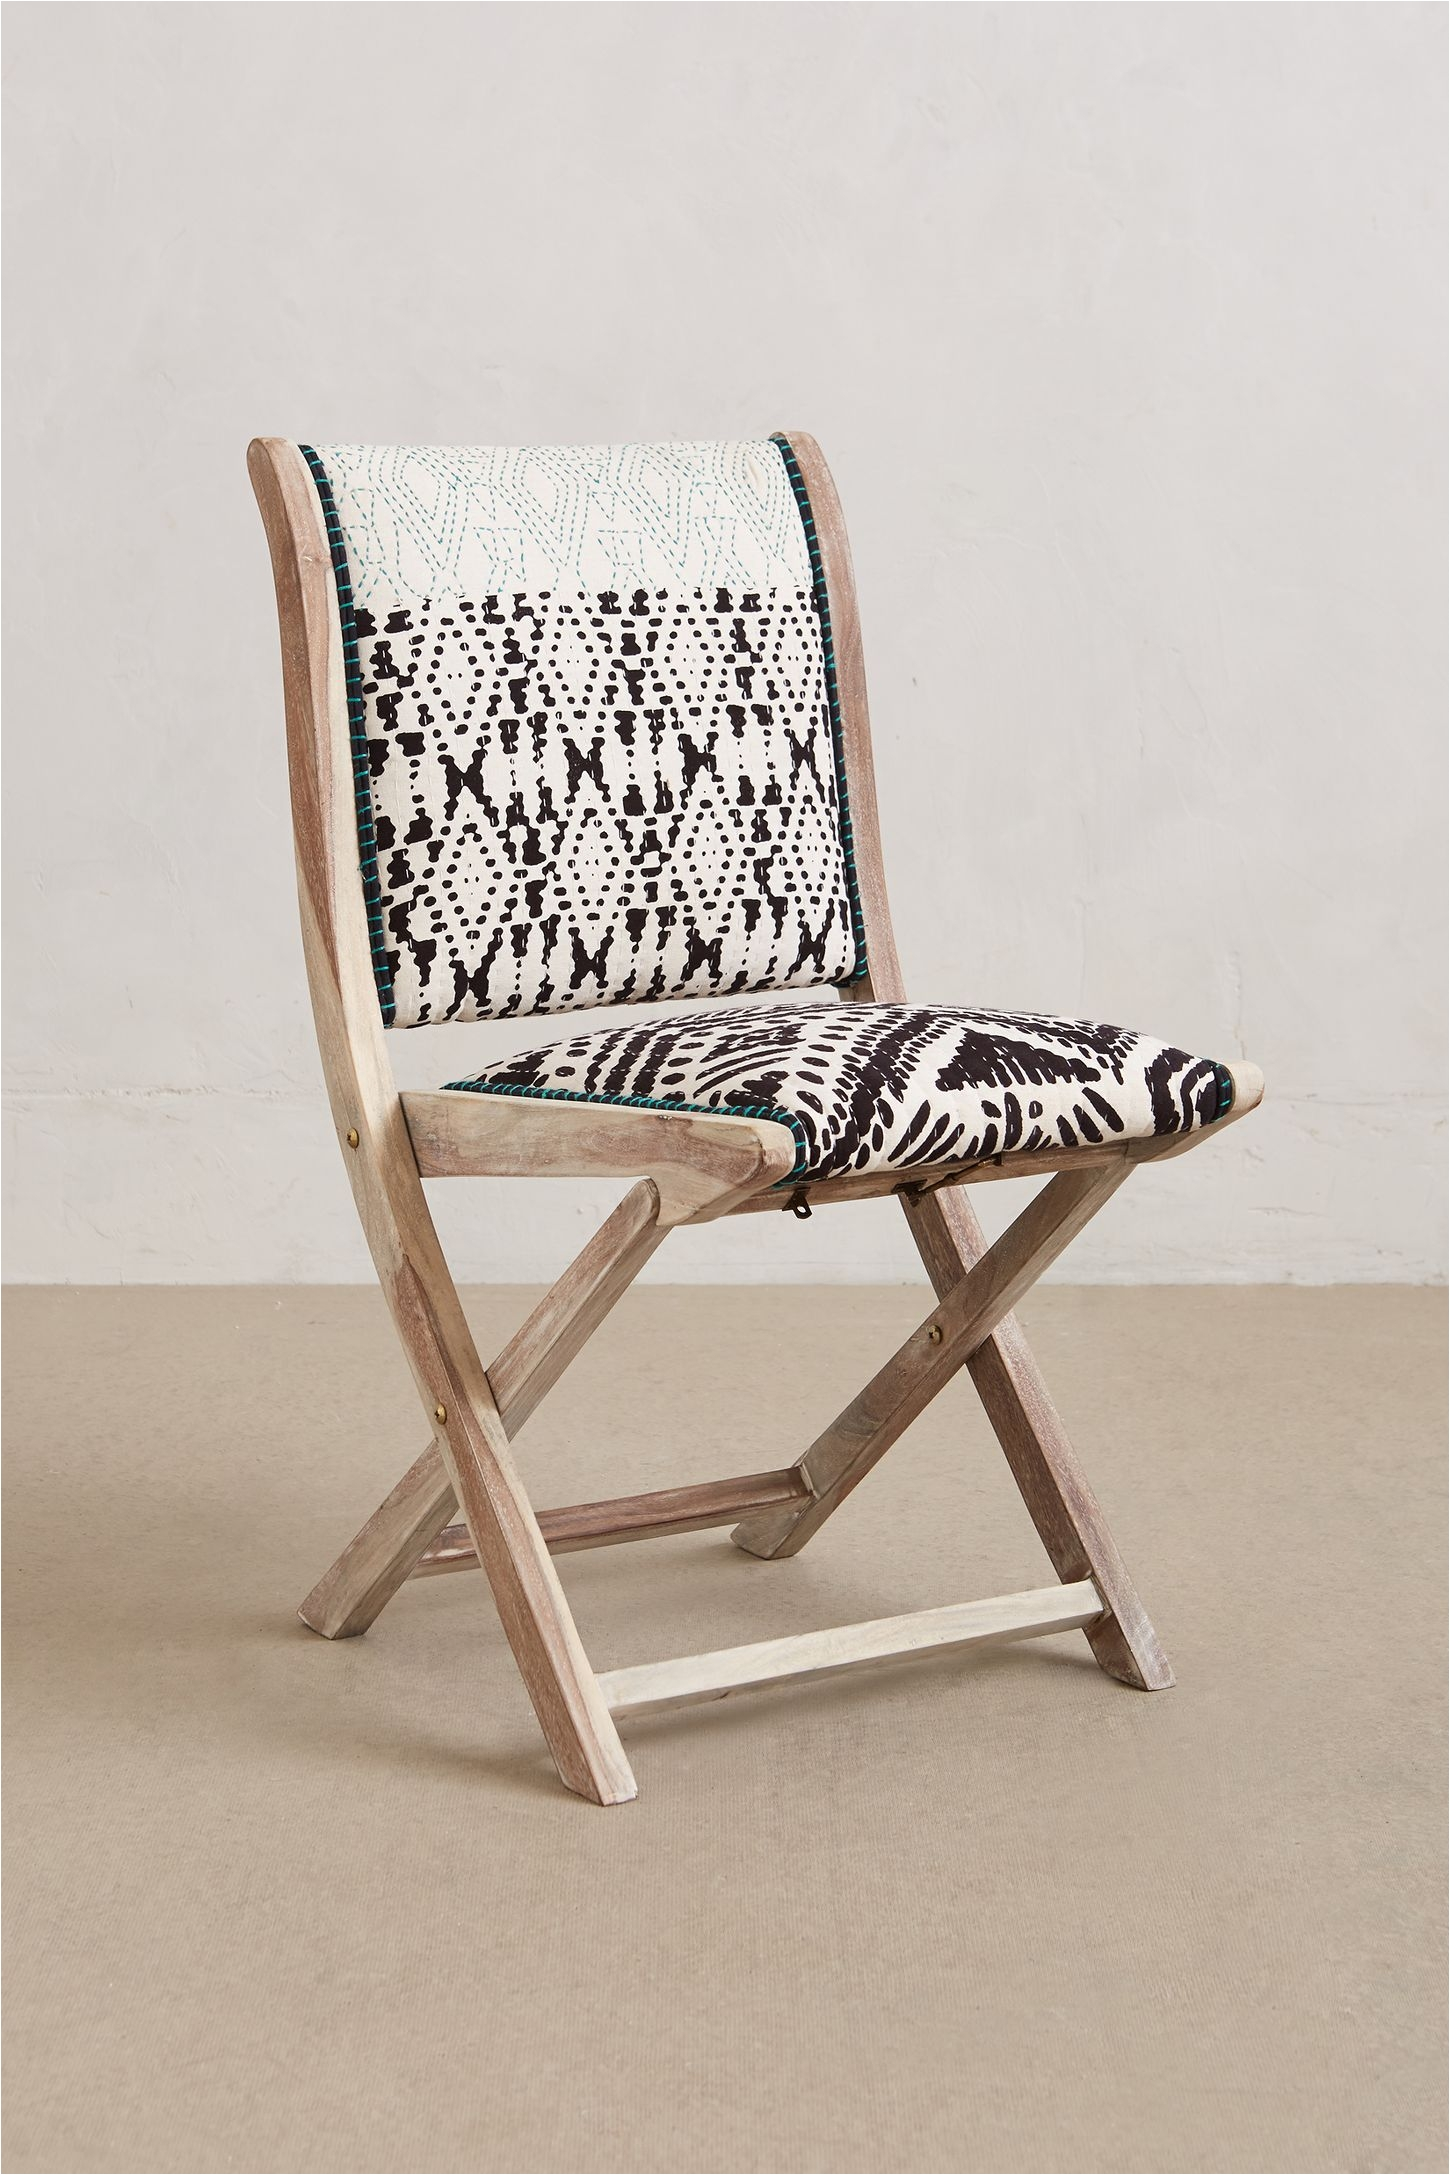 folding chair costco desk no wheels canada cloth chairs wooden wood frame padded small fold up fabric